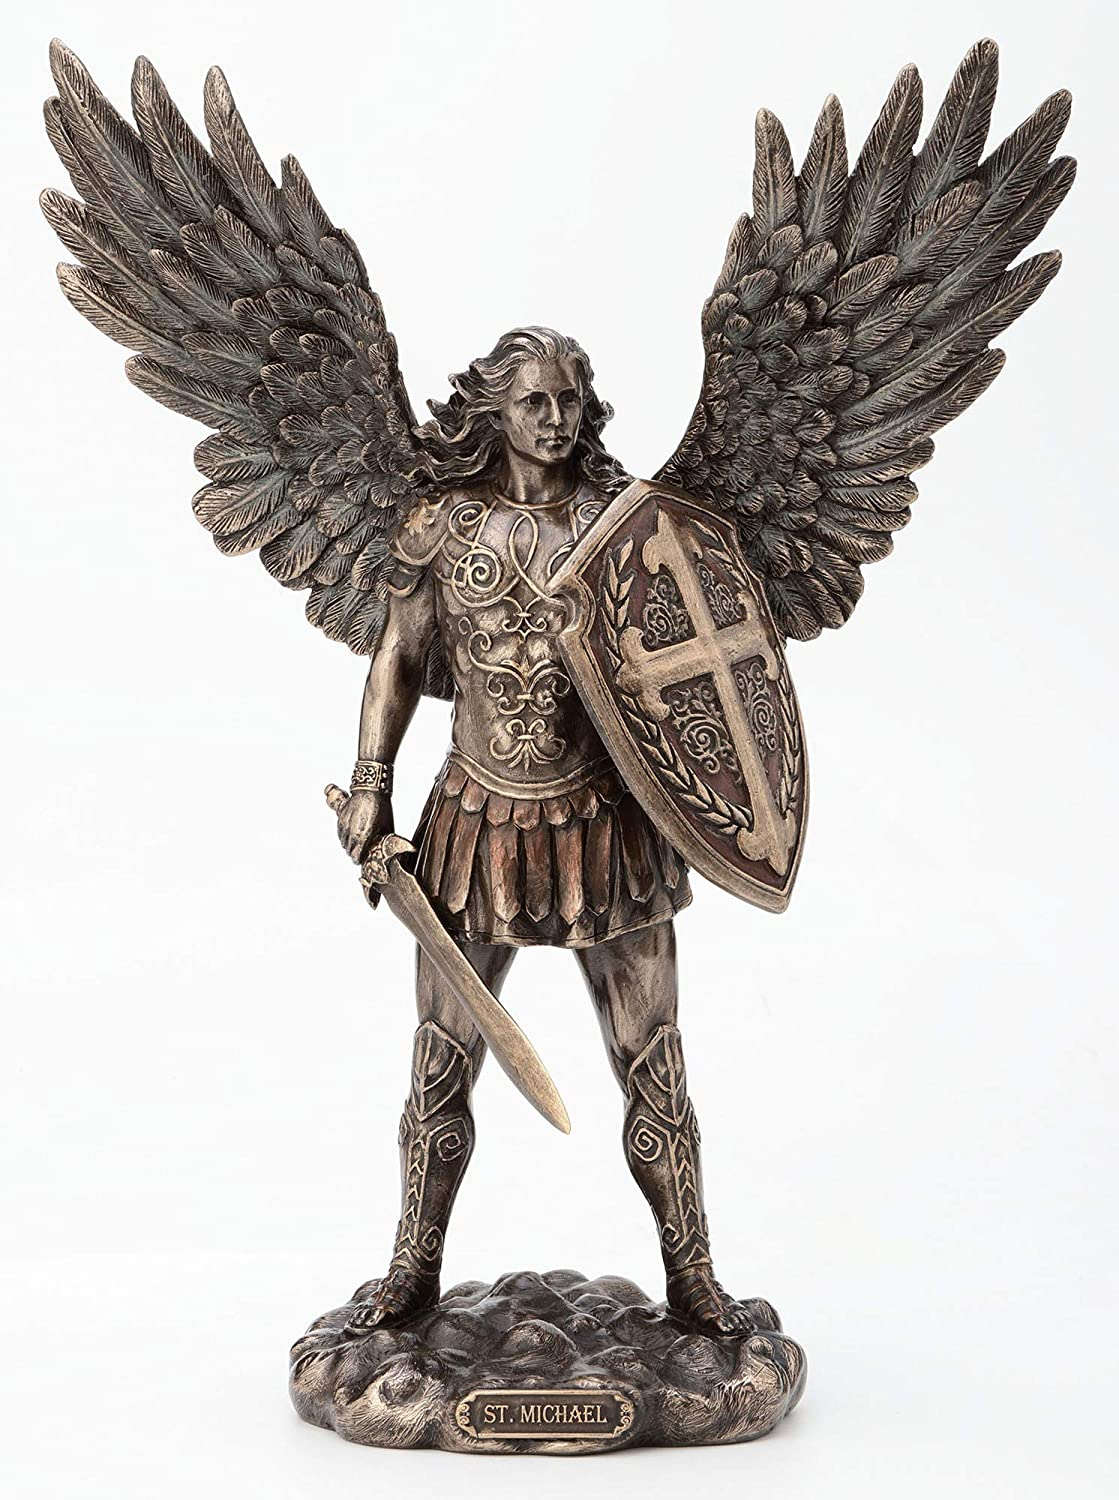 Veronese Design 11 Inch Saint Michael Archangel with Battle Shield and Sword Cold Cast Resin Material Antique Bronze Finish Angel Statue